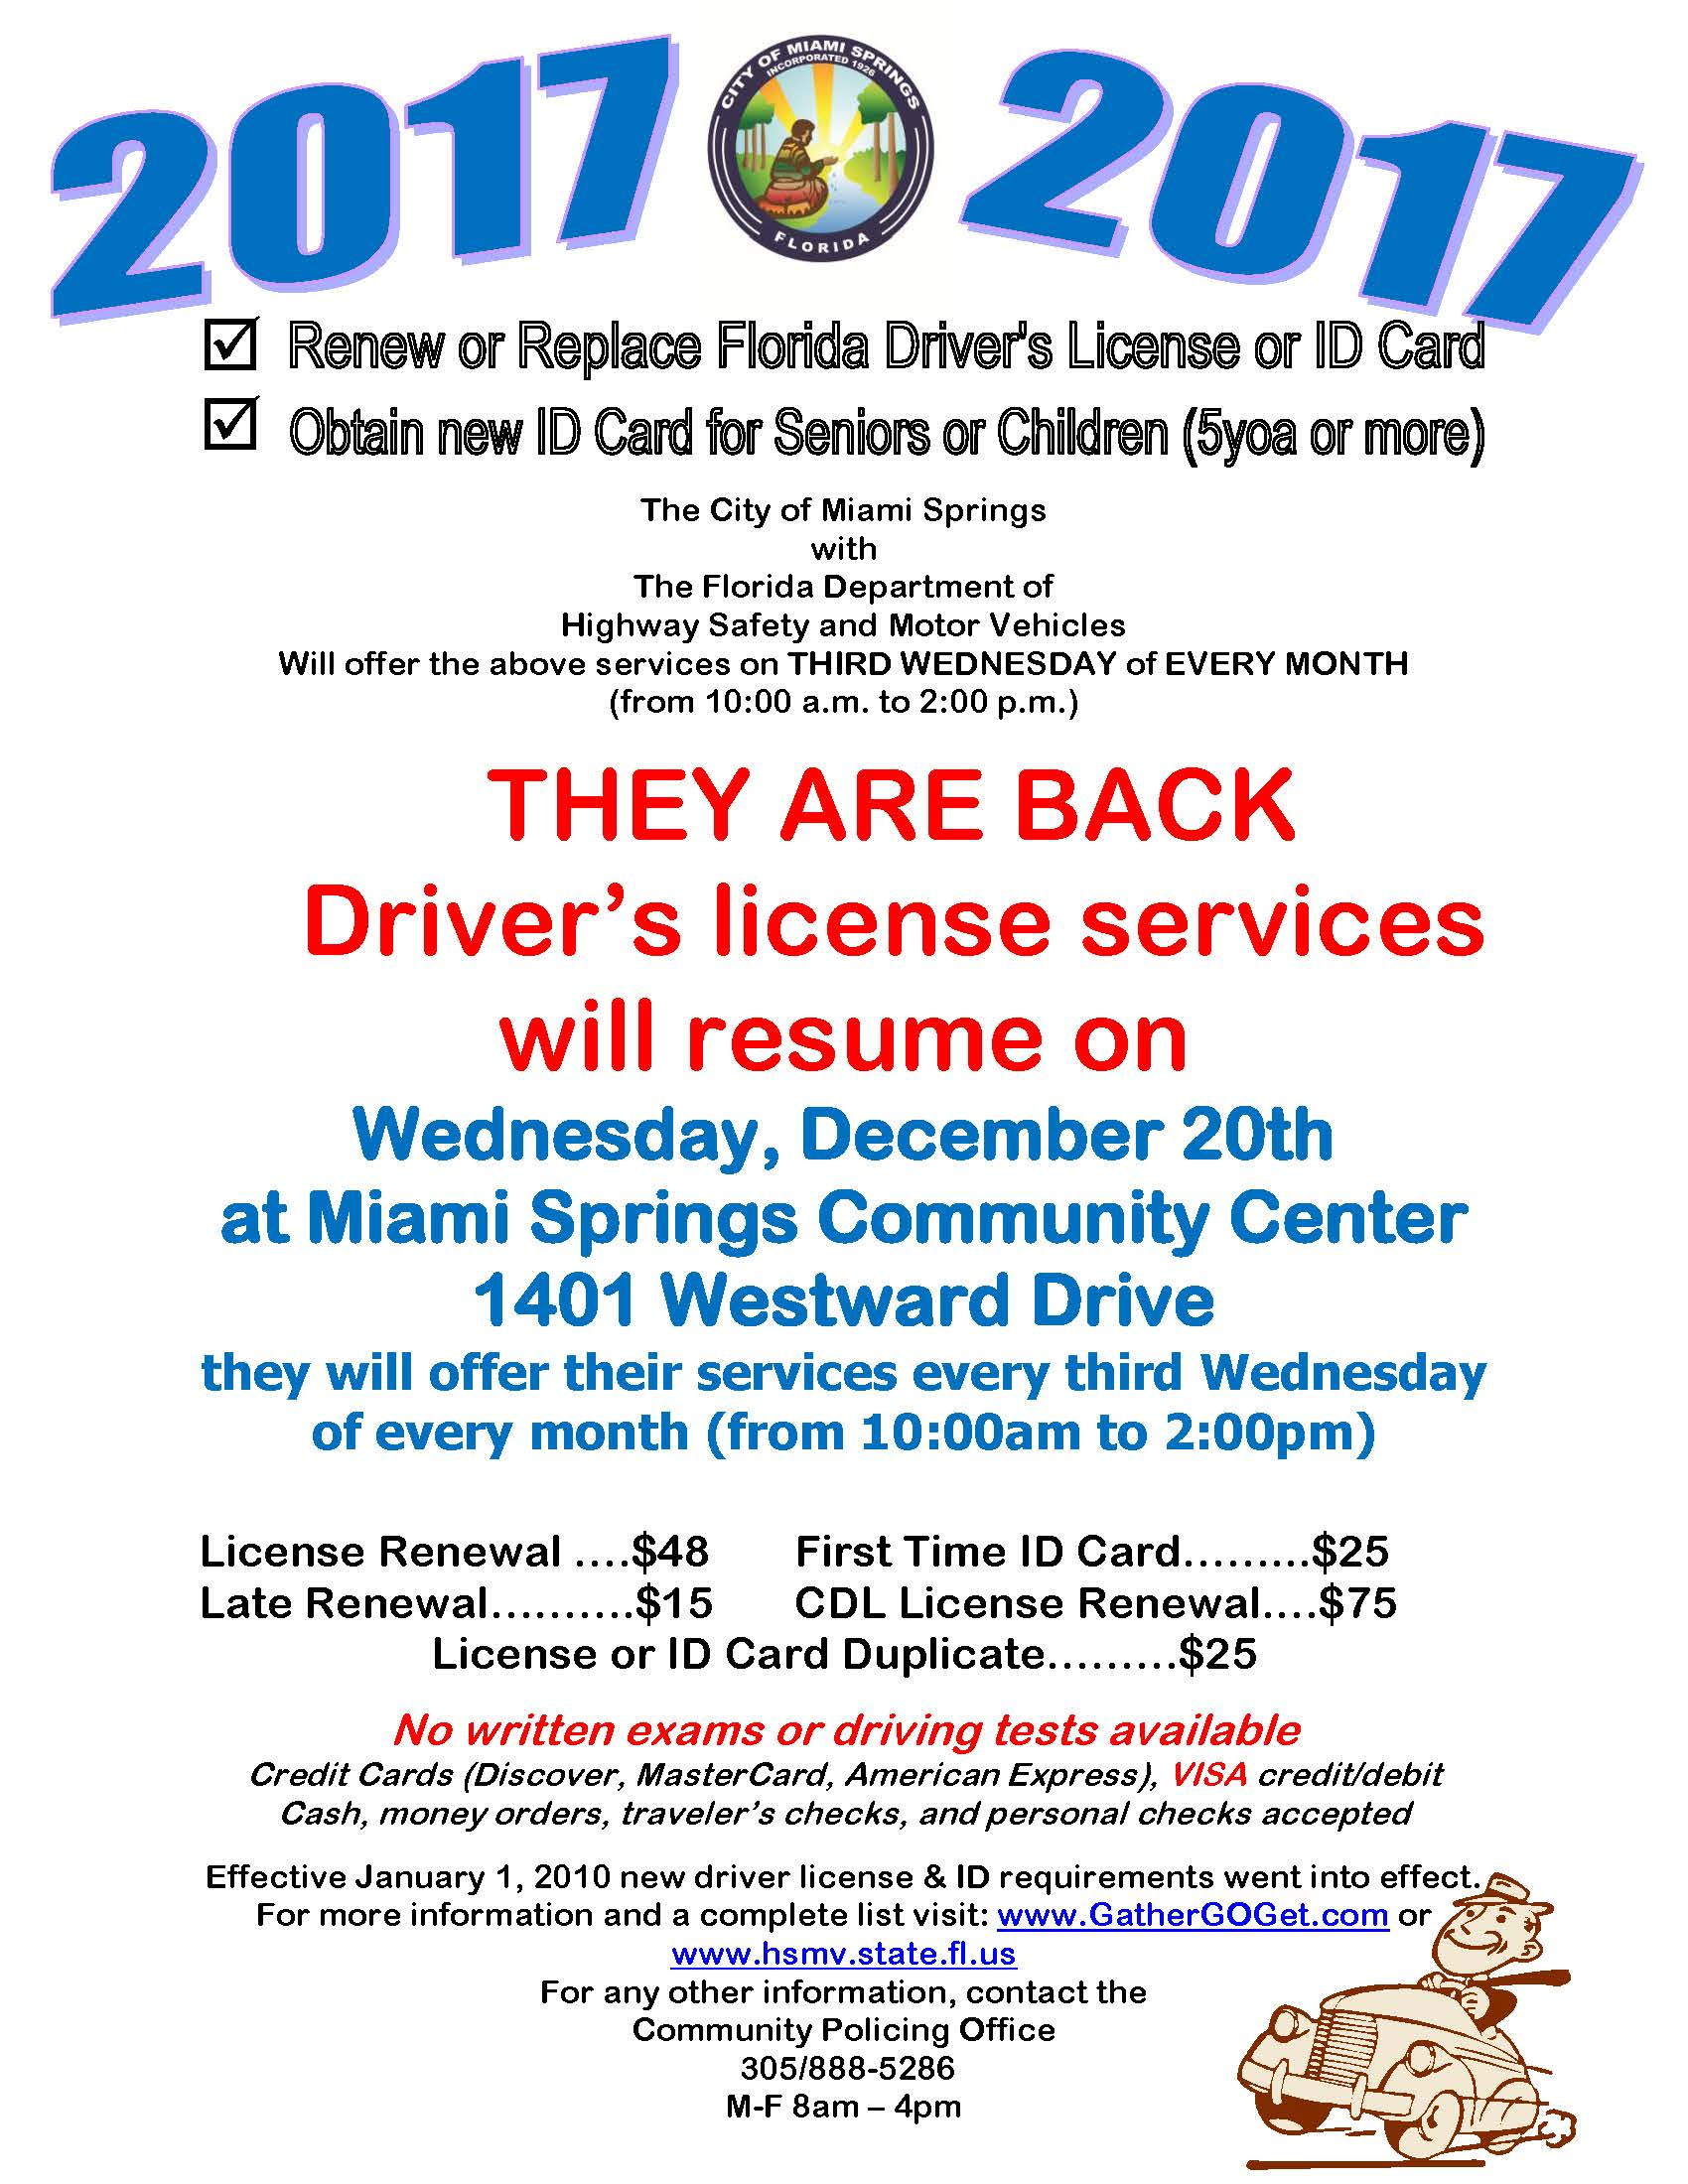 renew my vehicle registration florida vehicle ideas